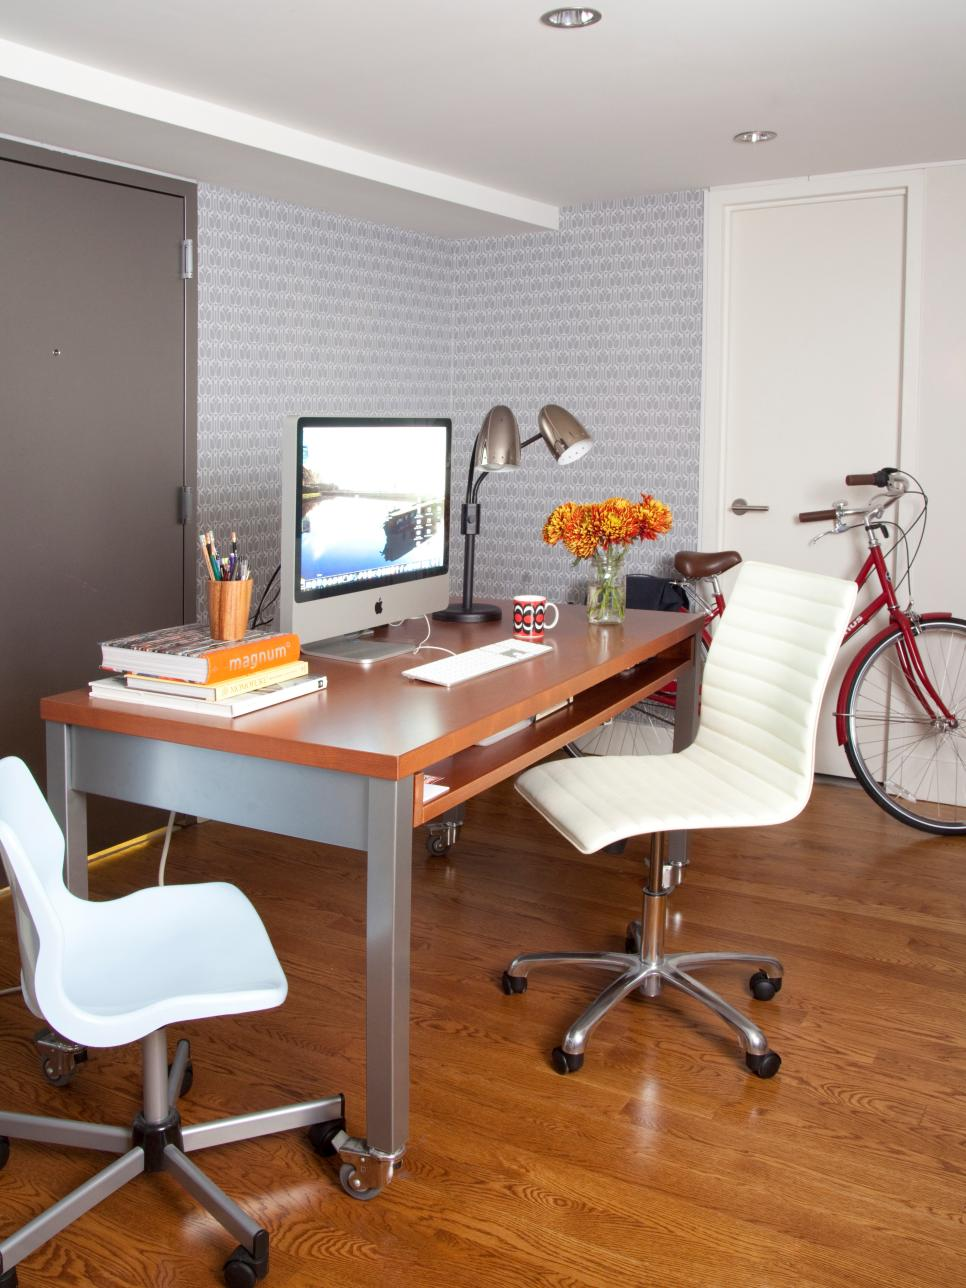 Small home office ideas hgtv for Office design room